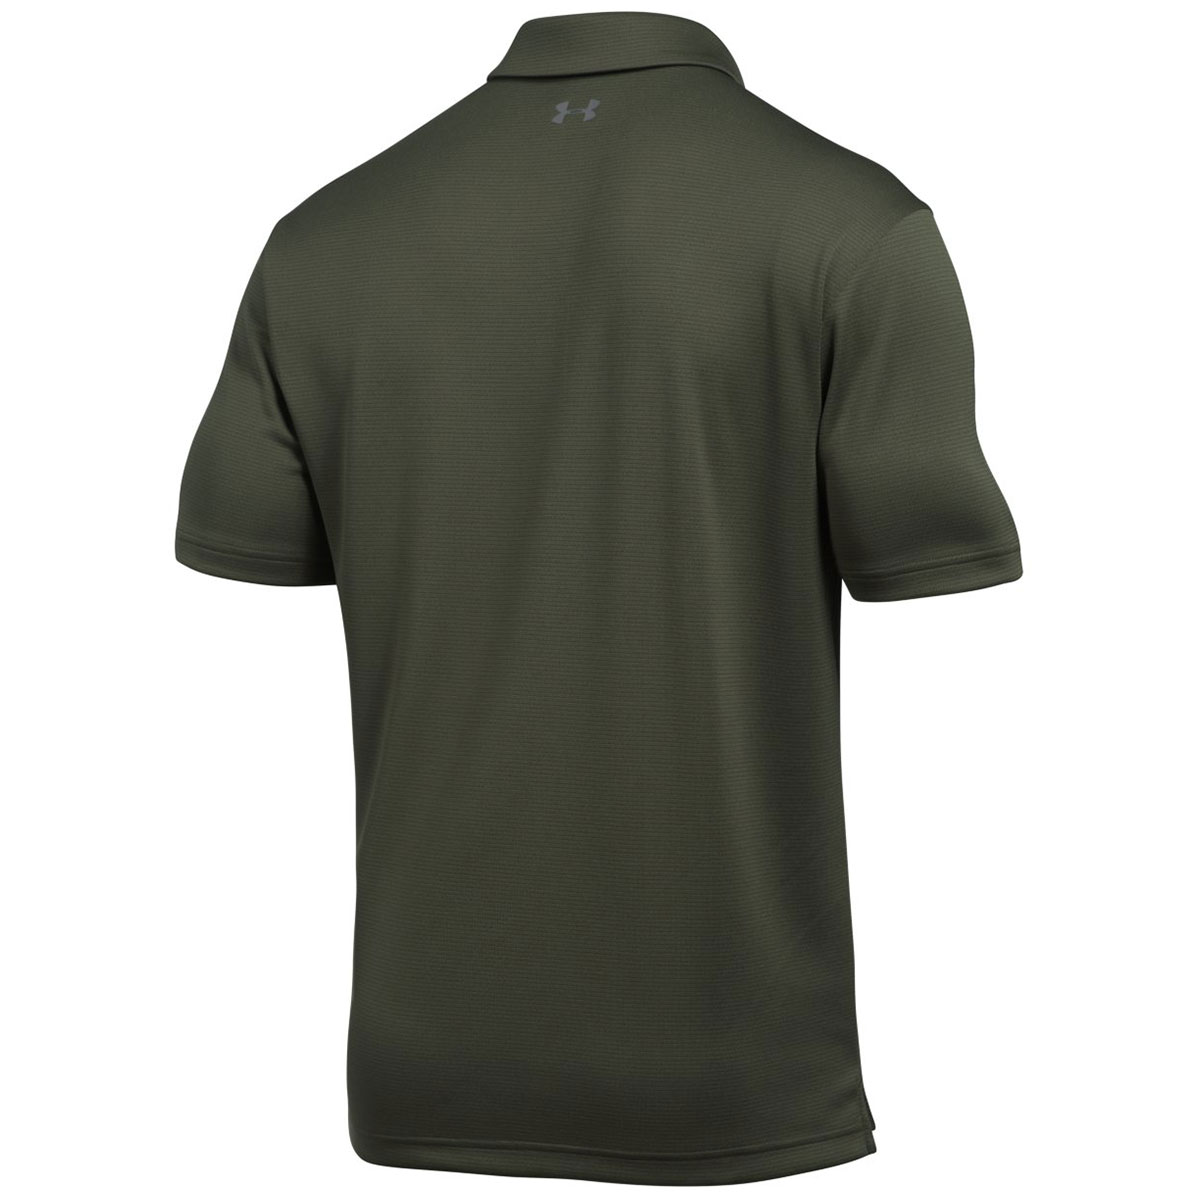 Under-Armour-Mens-2019-Golf-Tech-Wicking-Textured-Soft-Light-Polo-Shirt thumbnail 29